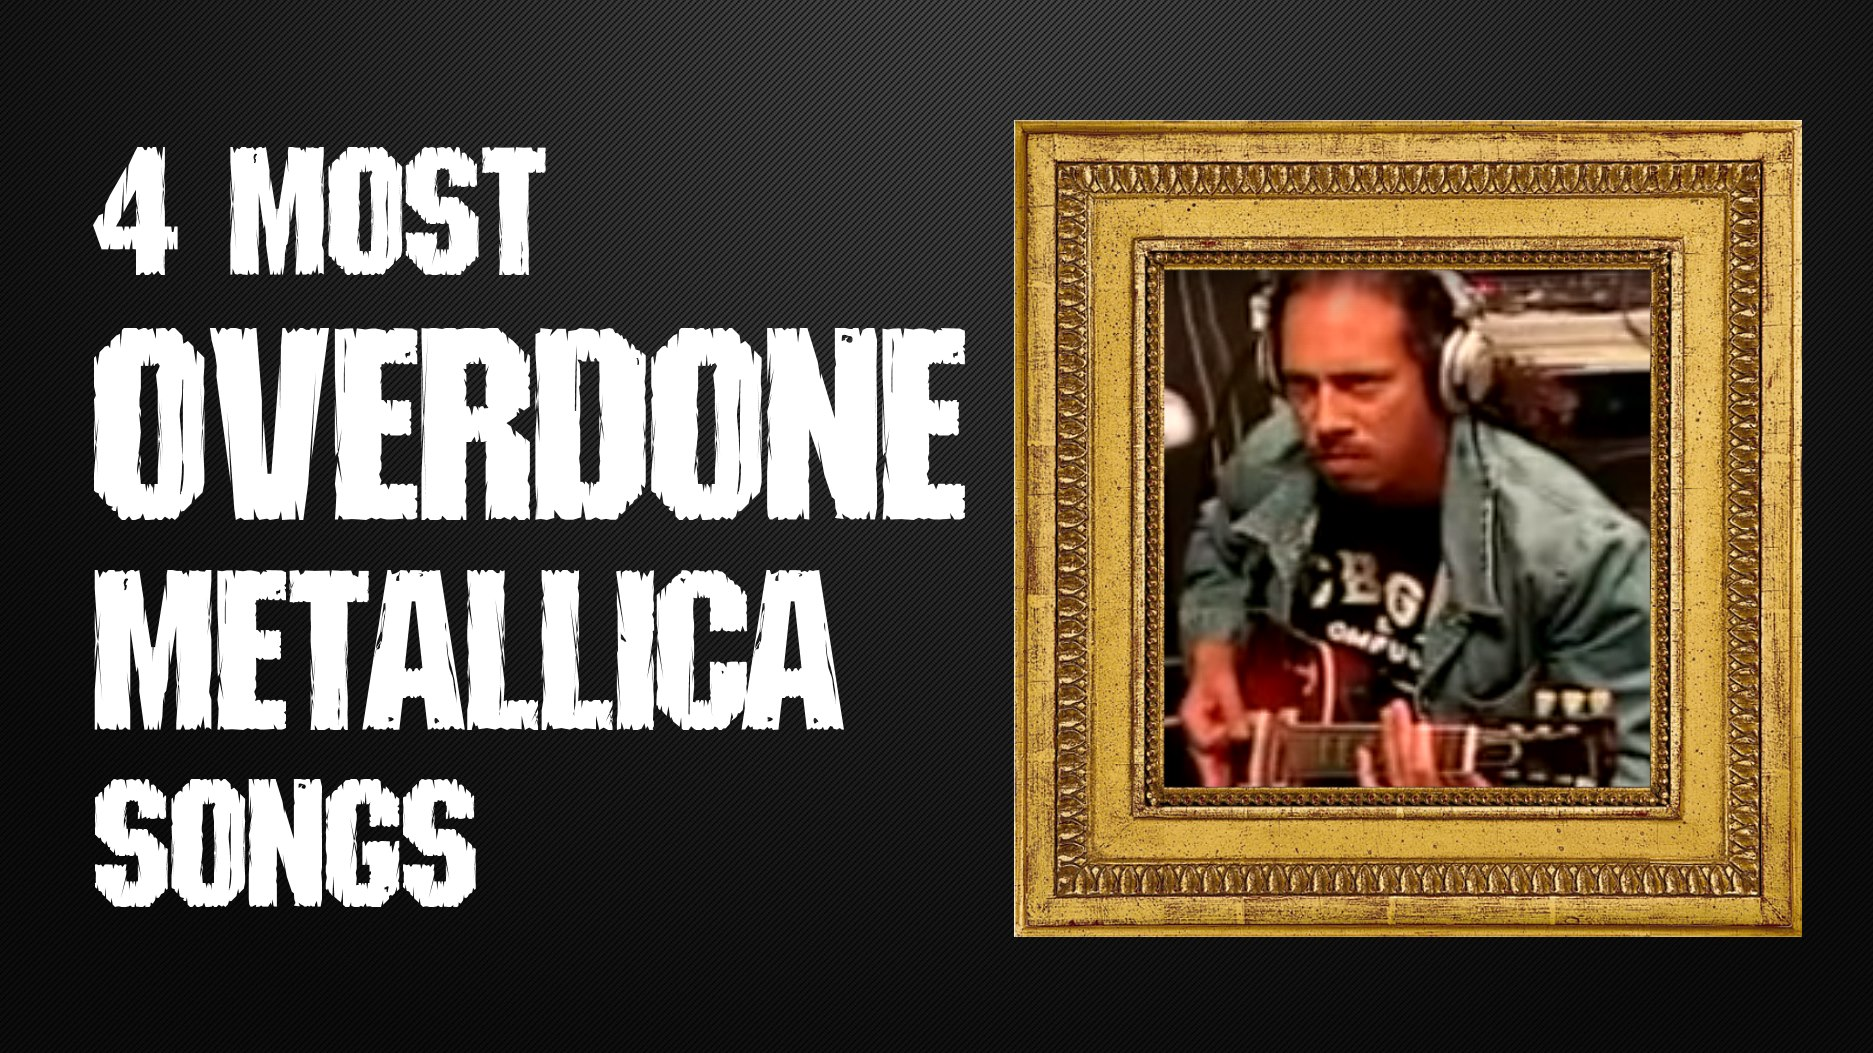 4 most OVERDONE Metallica songs